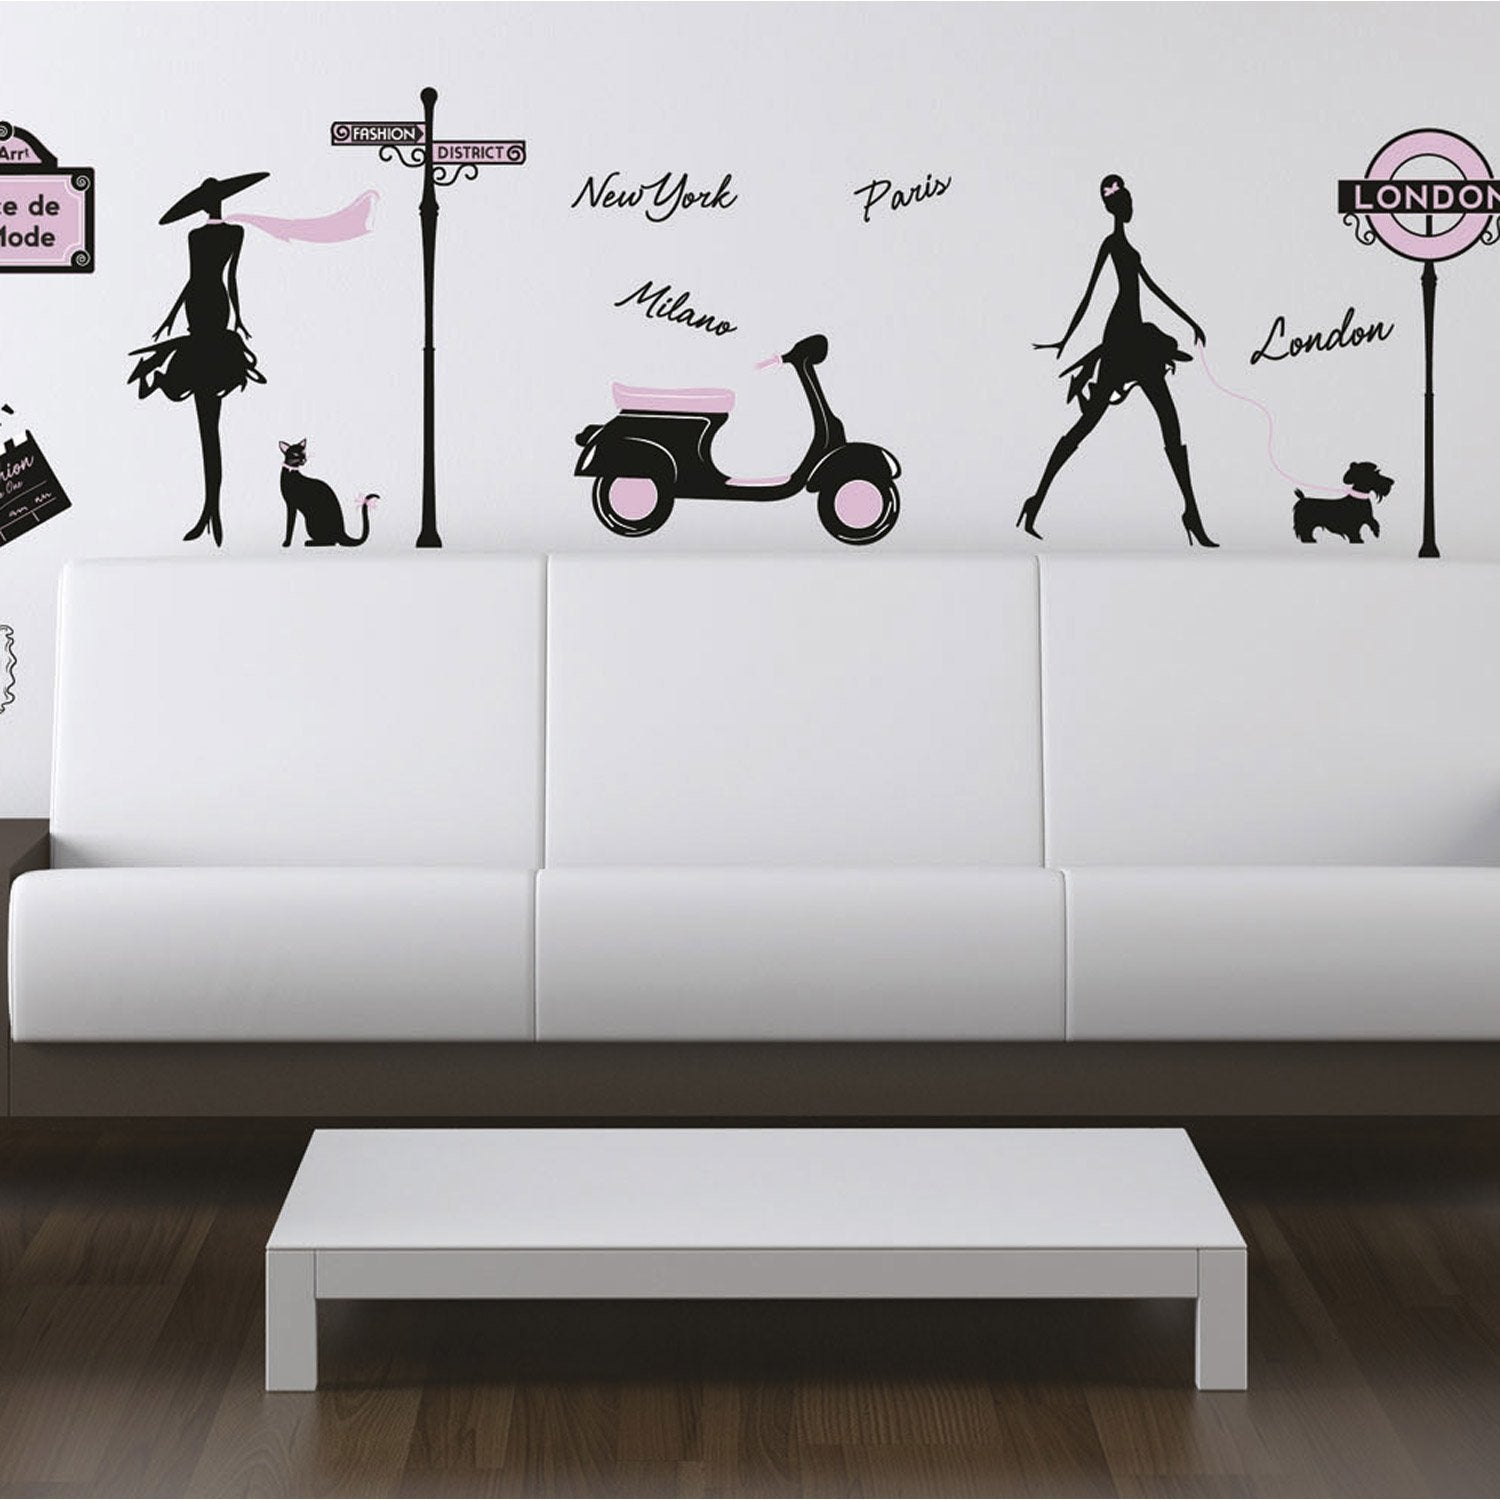 Sticker world fashion 50 cm x 70 cm leroy merlin - Leroy merlin stickers ...